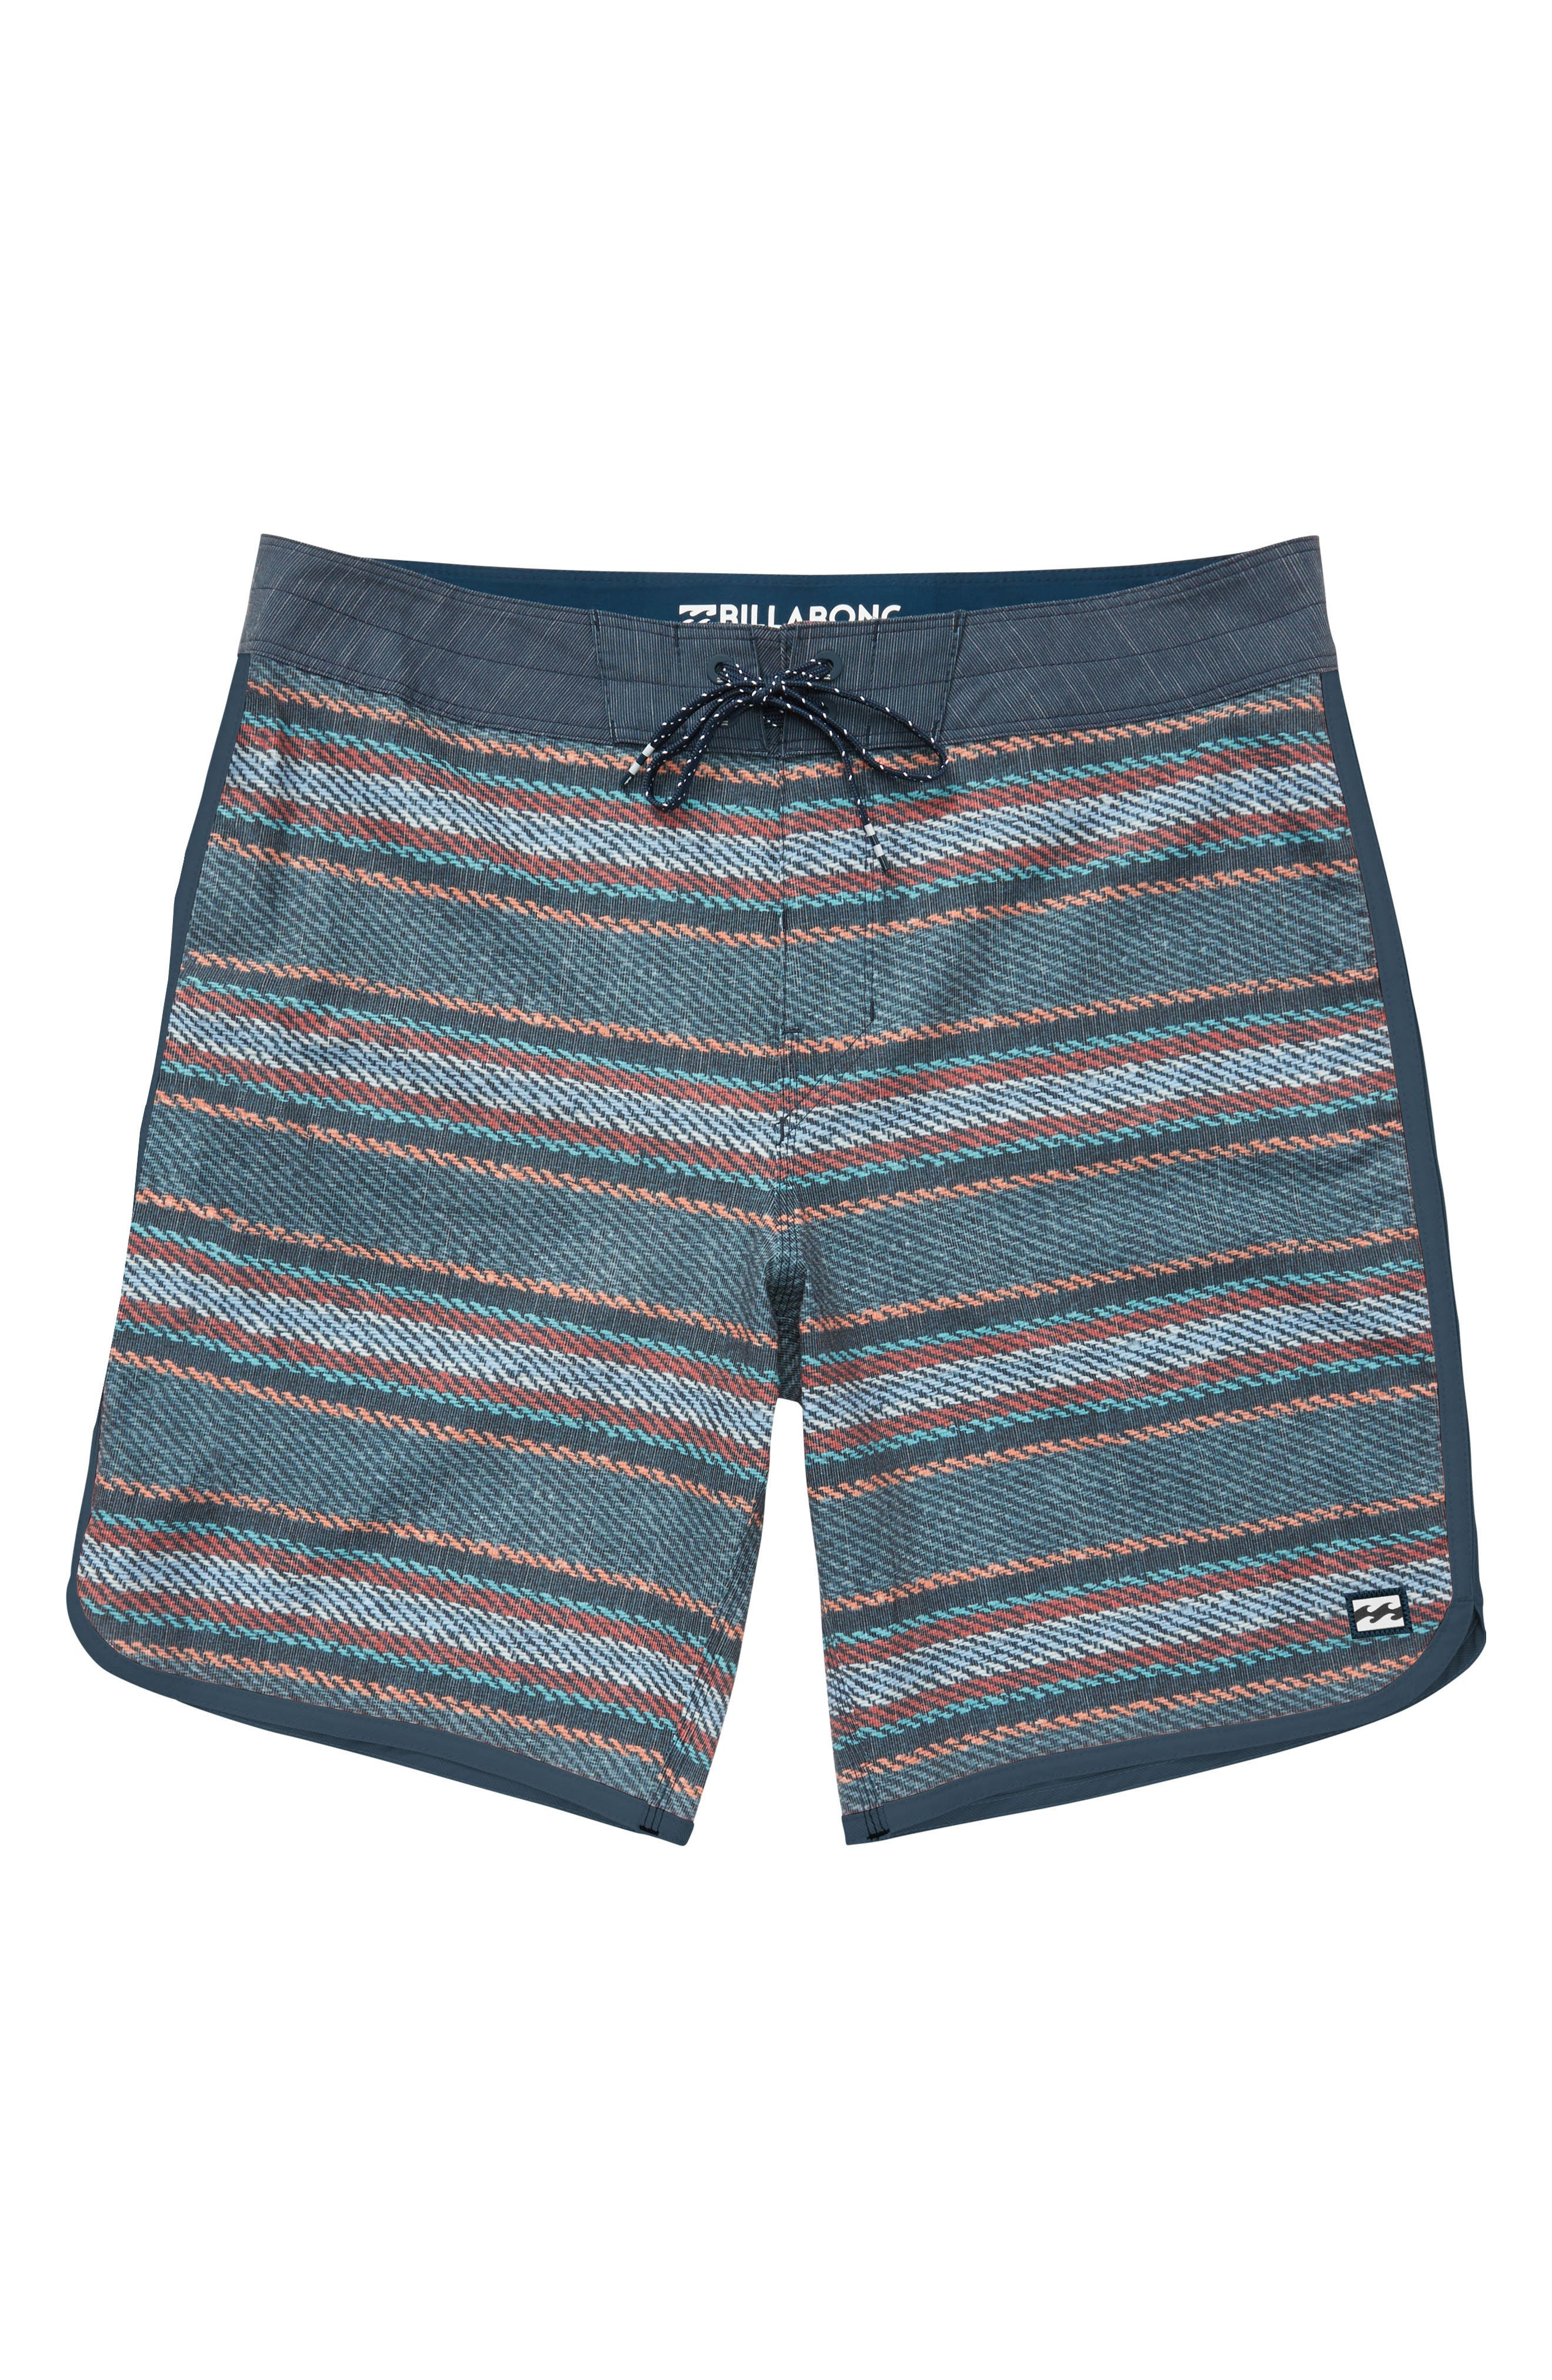 73 X Line Up Board Shorts,                         Main,                         color, Blue